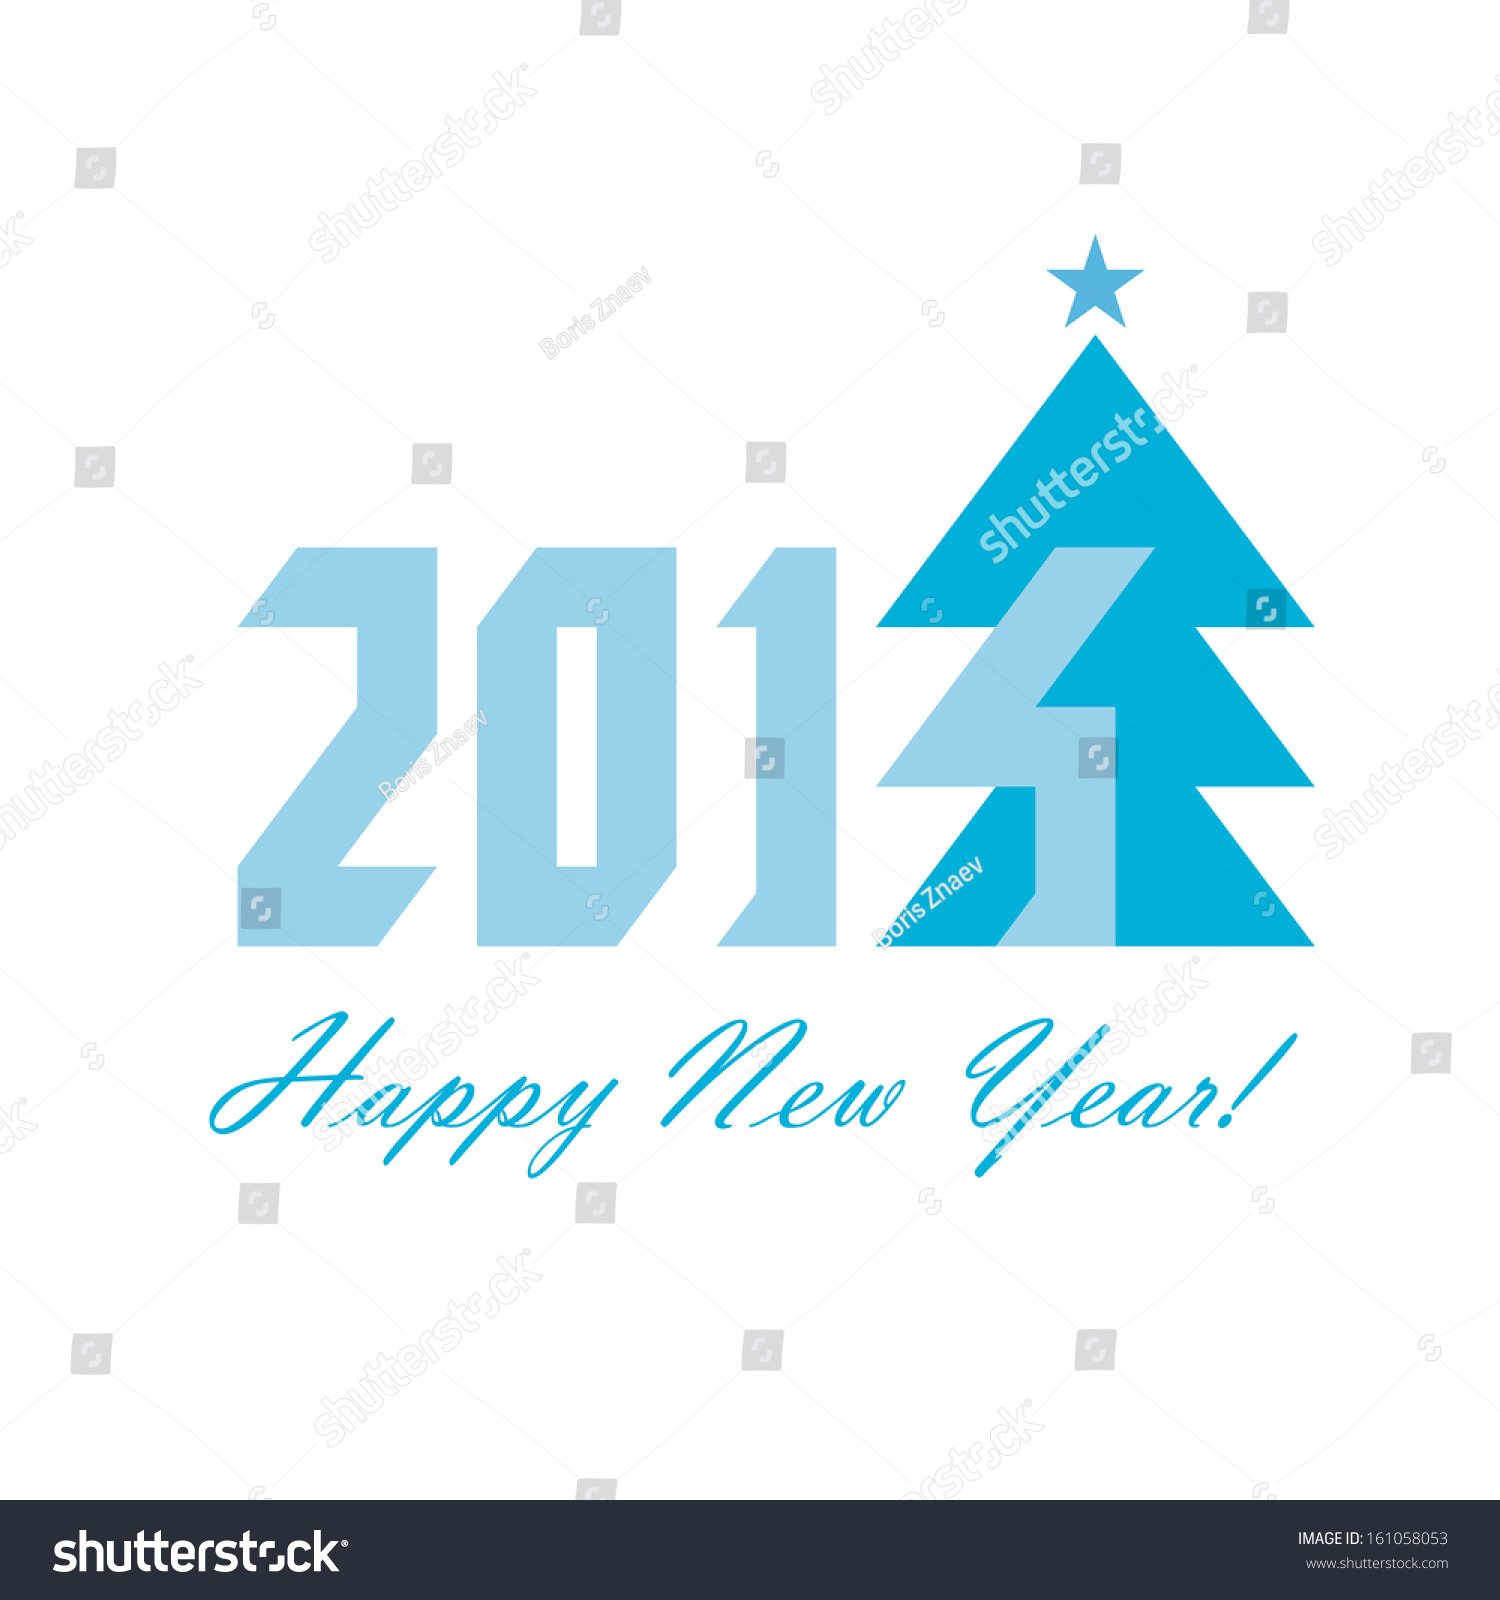 Happy new year 2014 greeting card stock illustration 161058053 the happy new year 2014 greeting card m4hsunfo